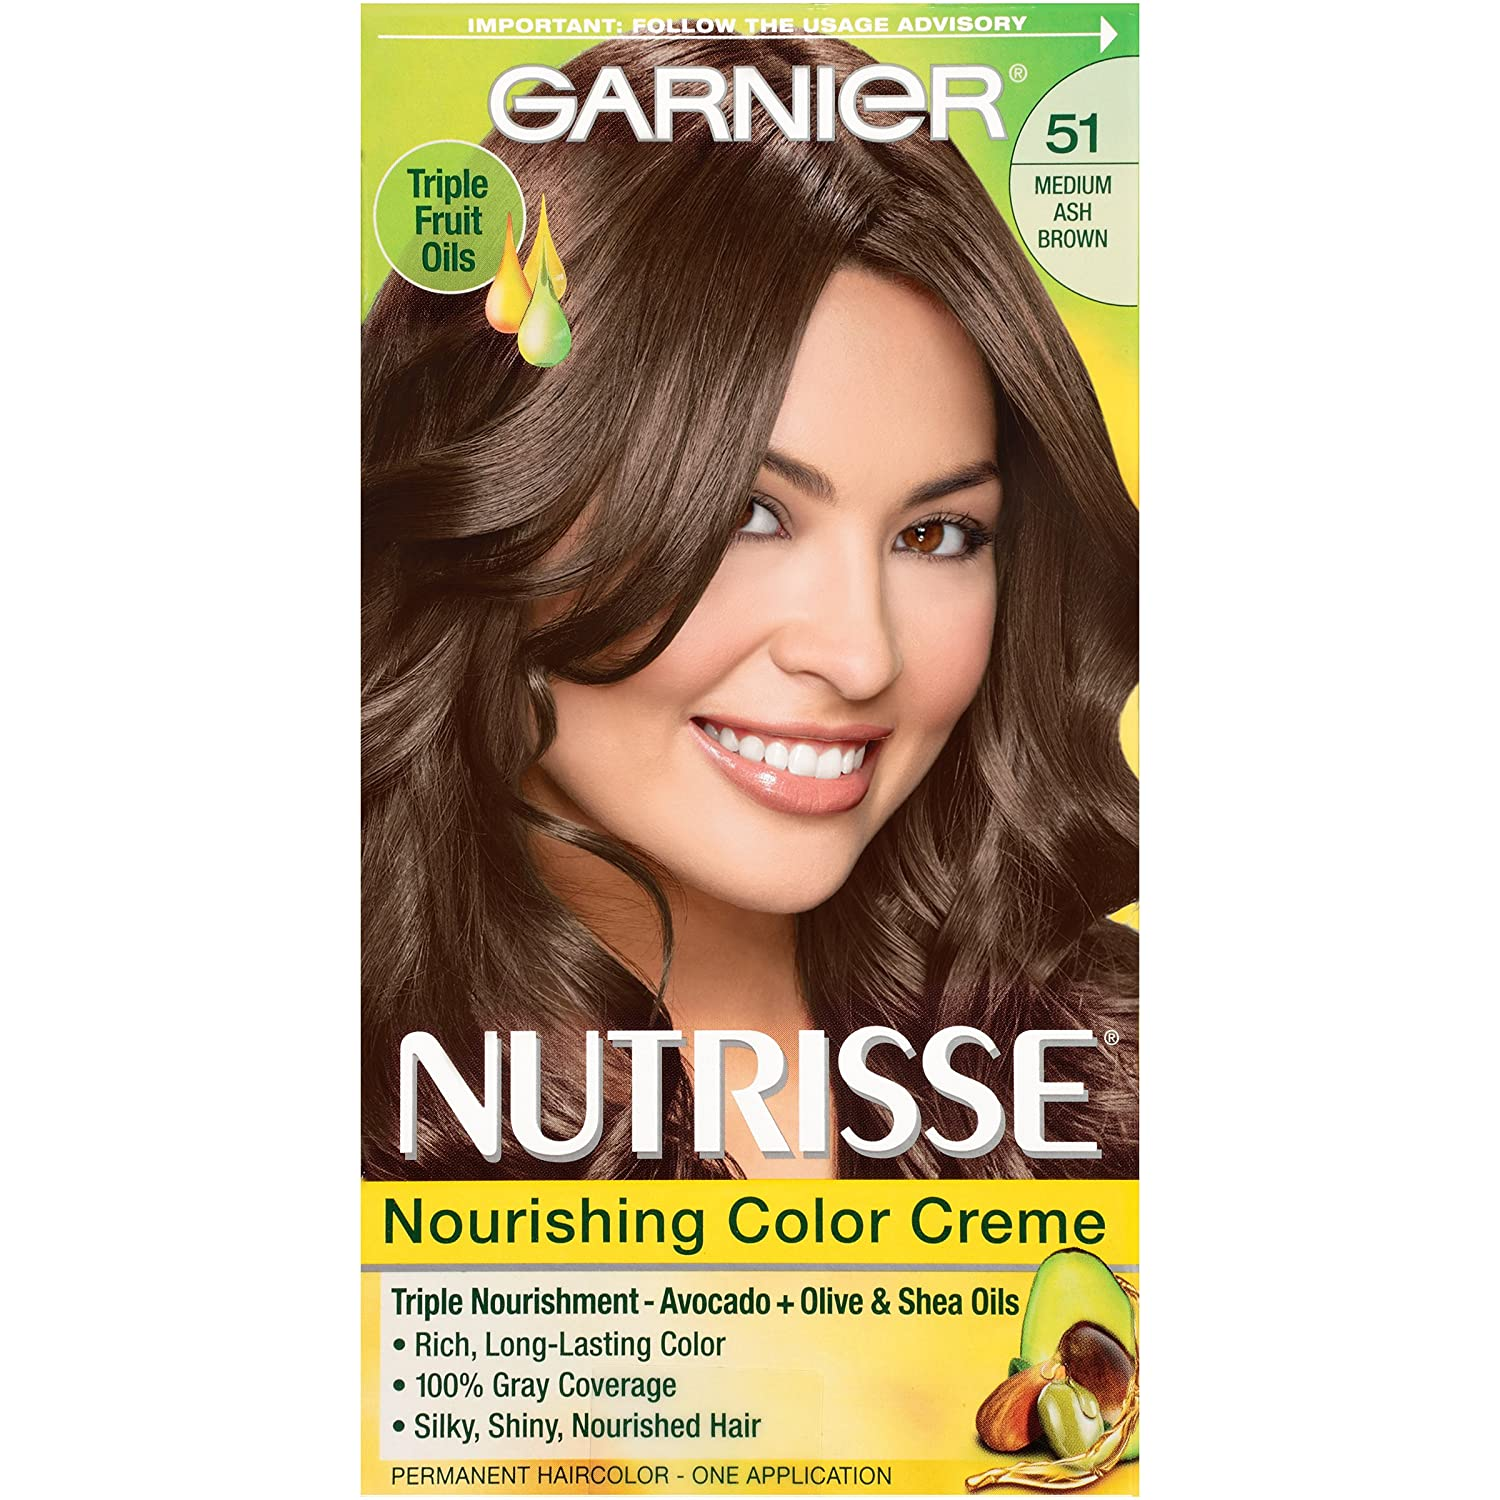 Amazon Garnier Nutrisse Nourishing Color Creme 51 Medium Ash